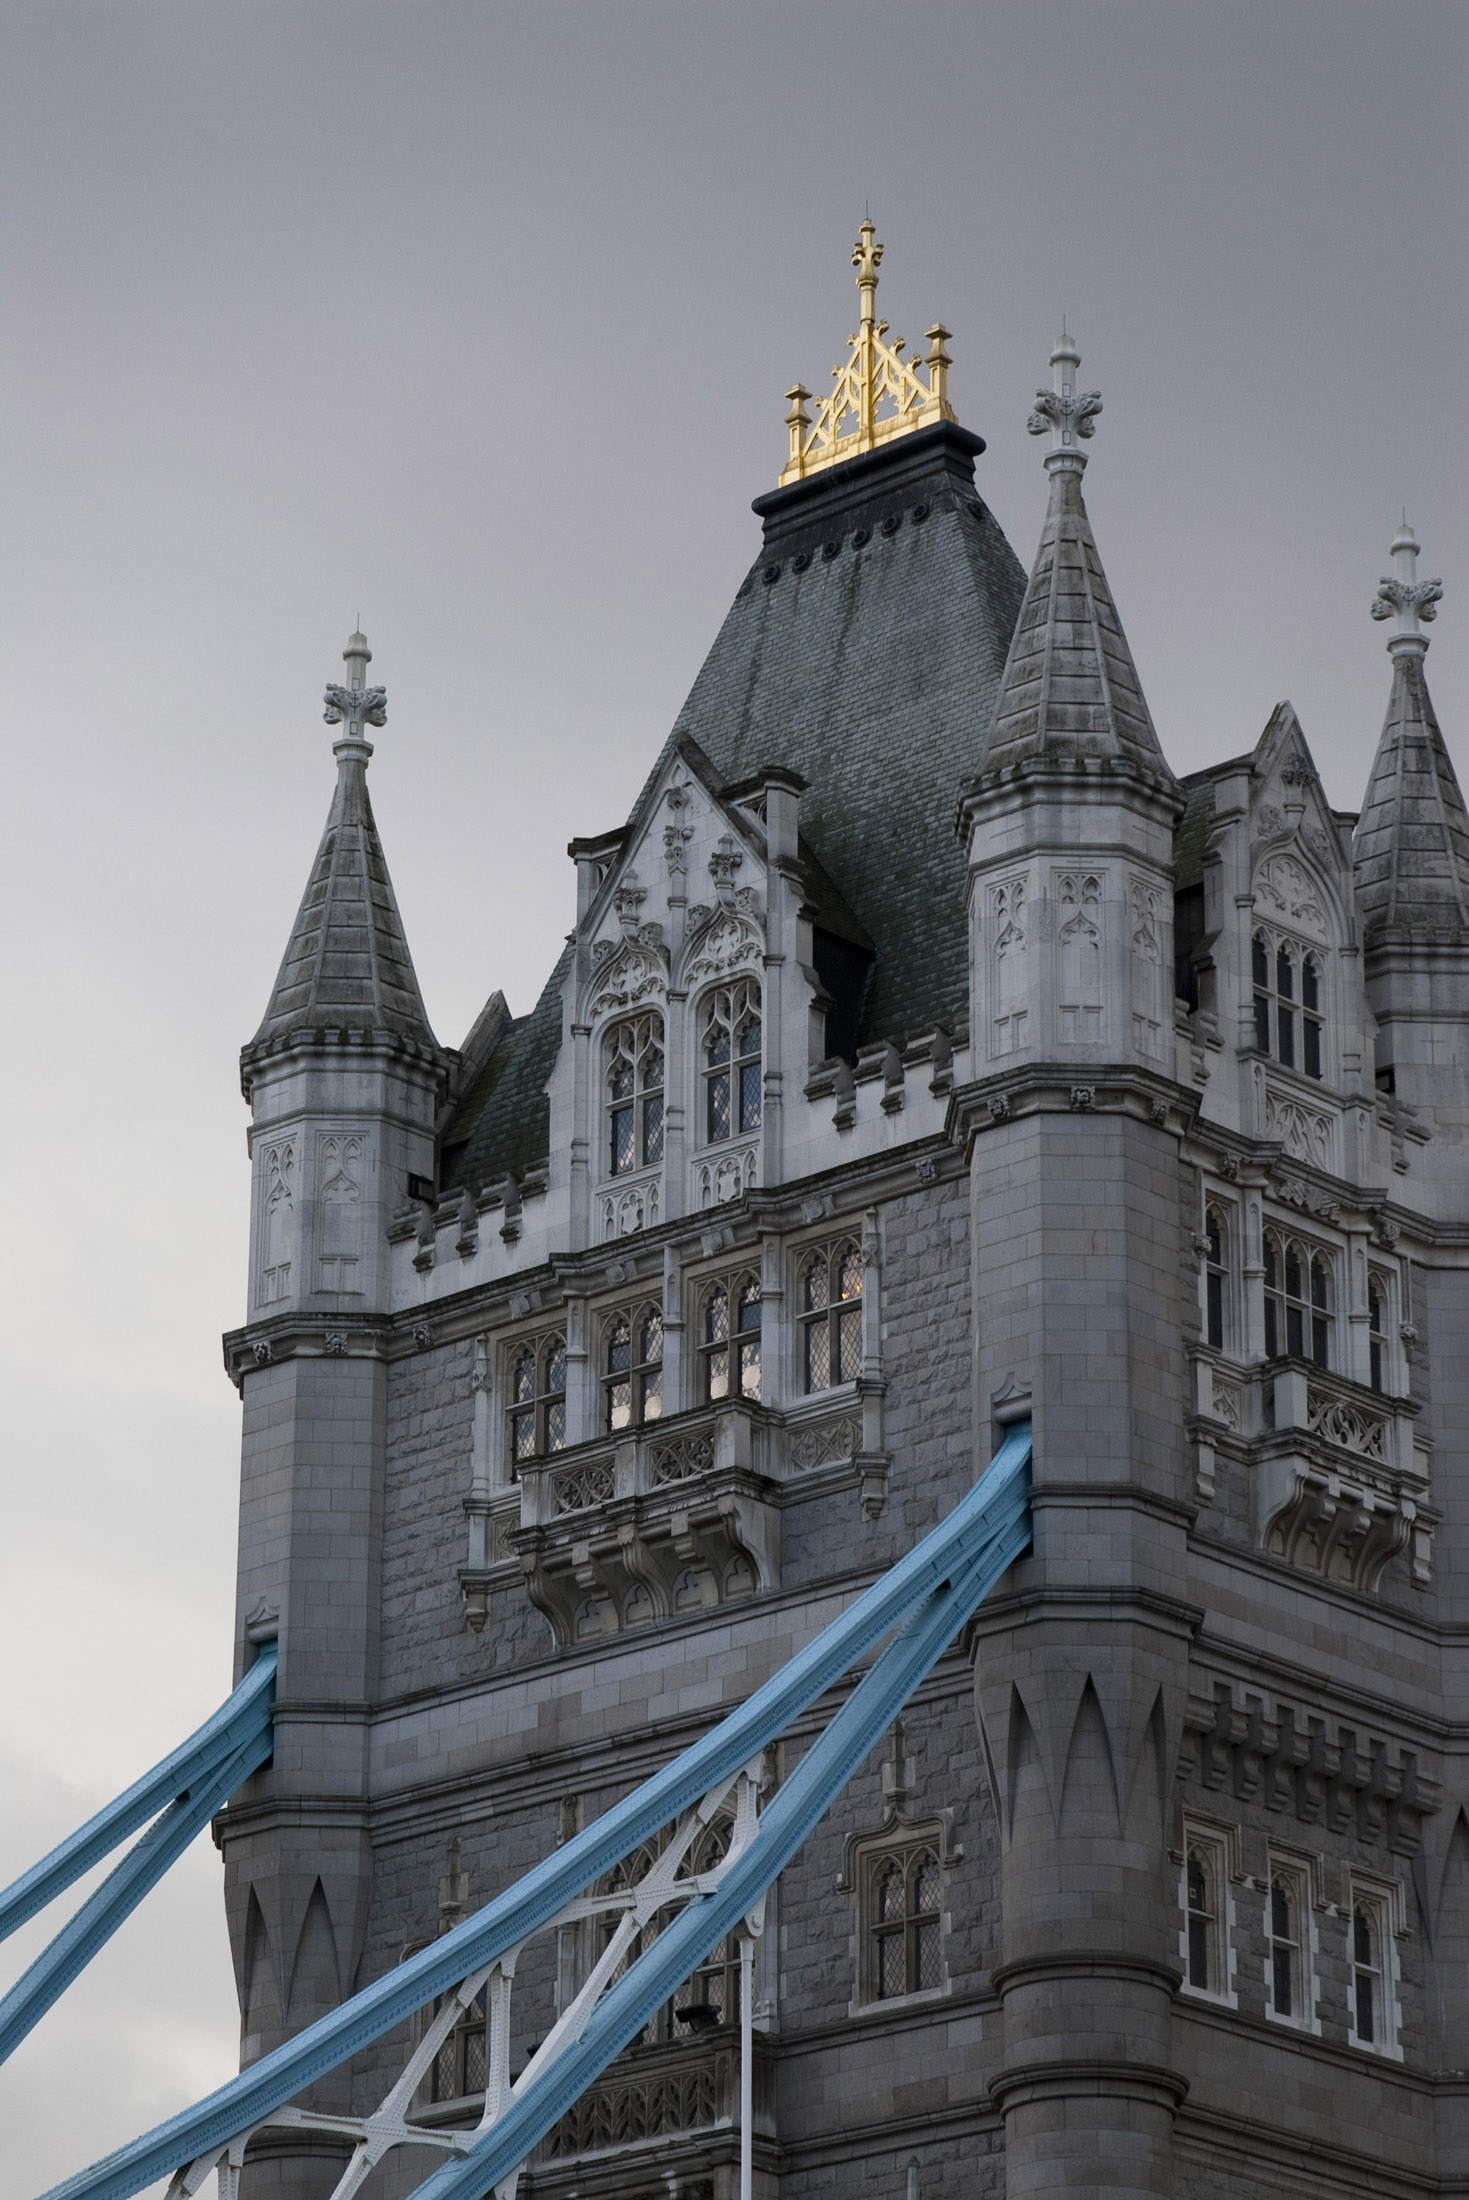 victorian gothic architectural details of one of the towers on londons famous tower bridge